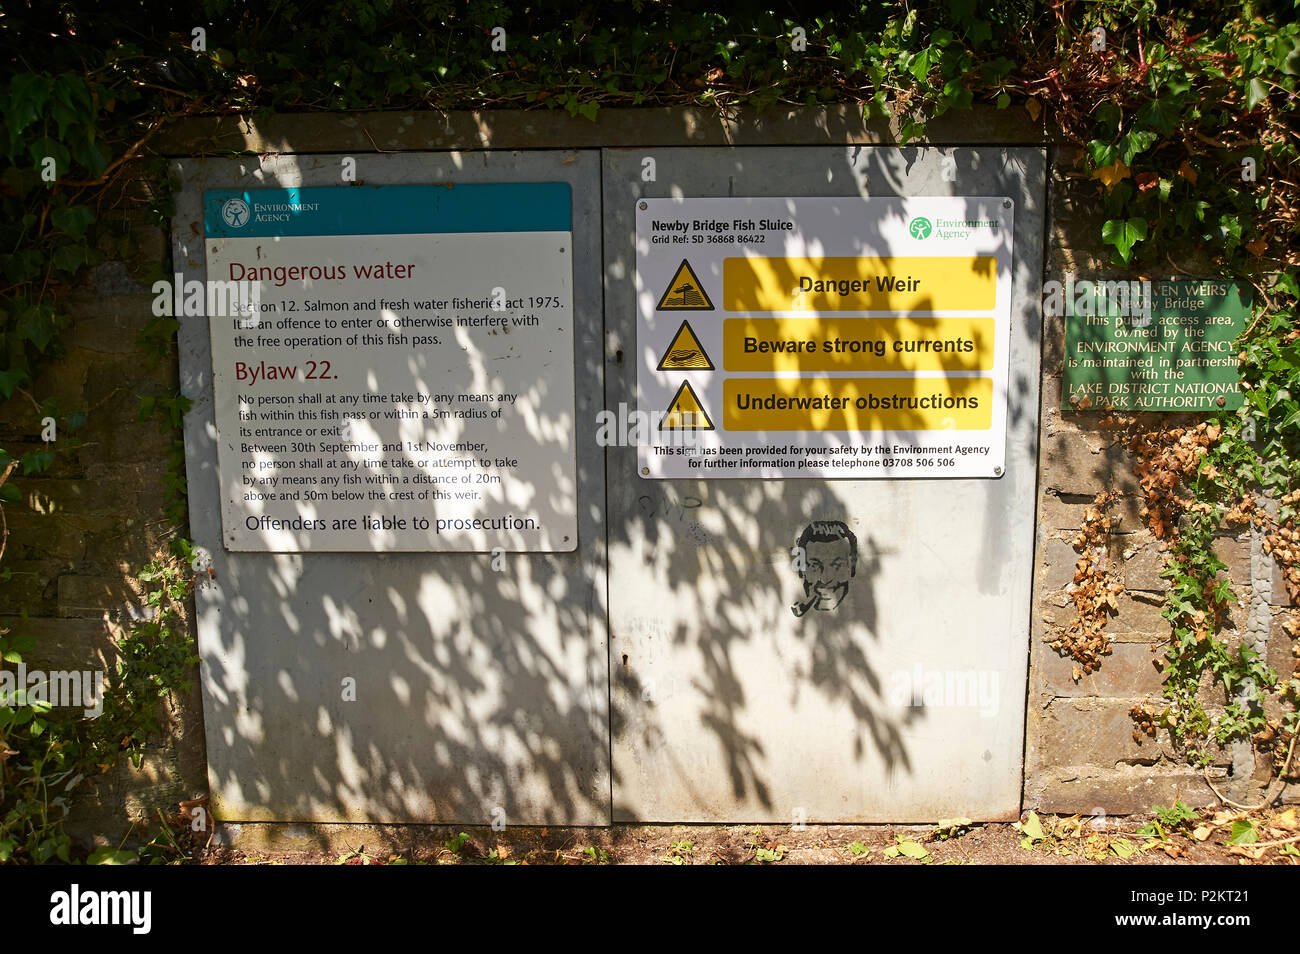 Warning signs on a fish ladder control box, in the Lake District National Park, Cumbria, England, UK,GB - Stock Image